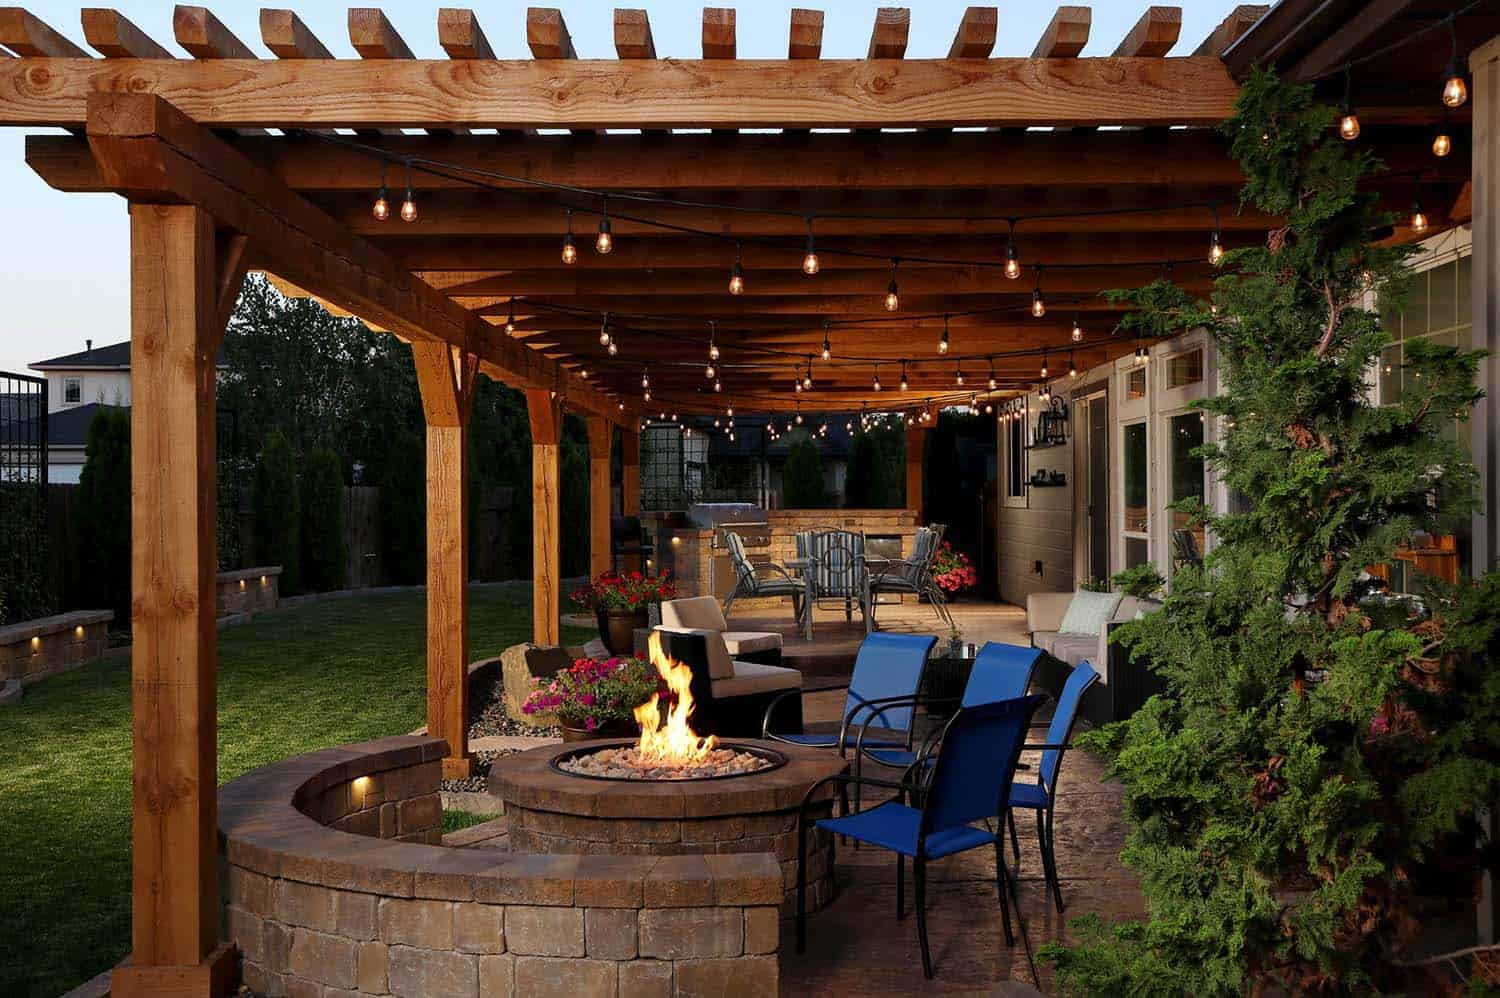 25+ Fabulous outdoor patio ideas to get ready for spring ... on Small Outdoor Covered Patio Ideas id=60316